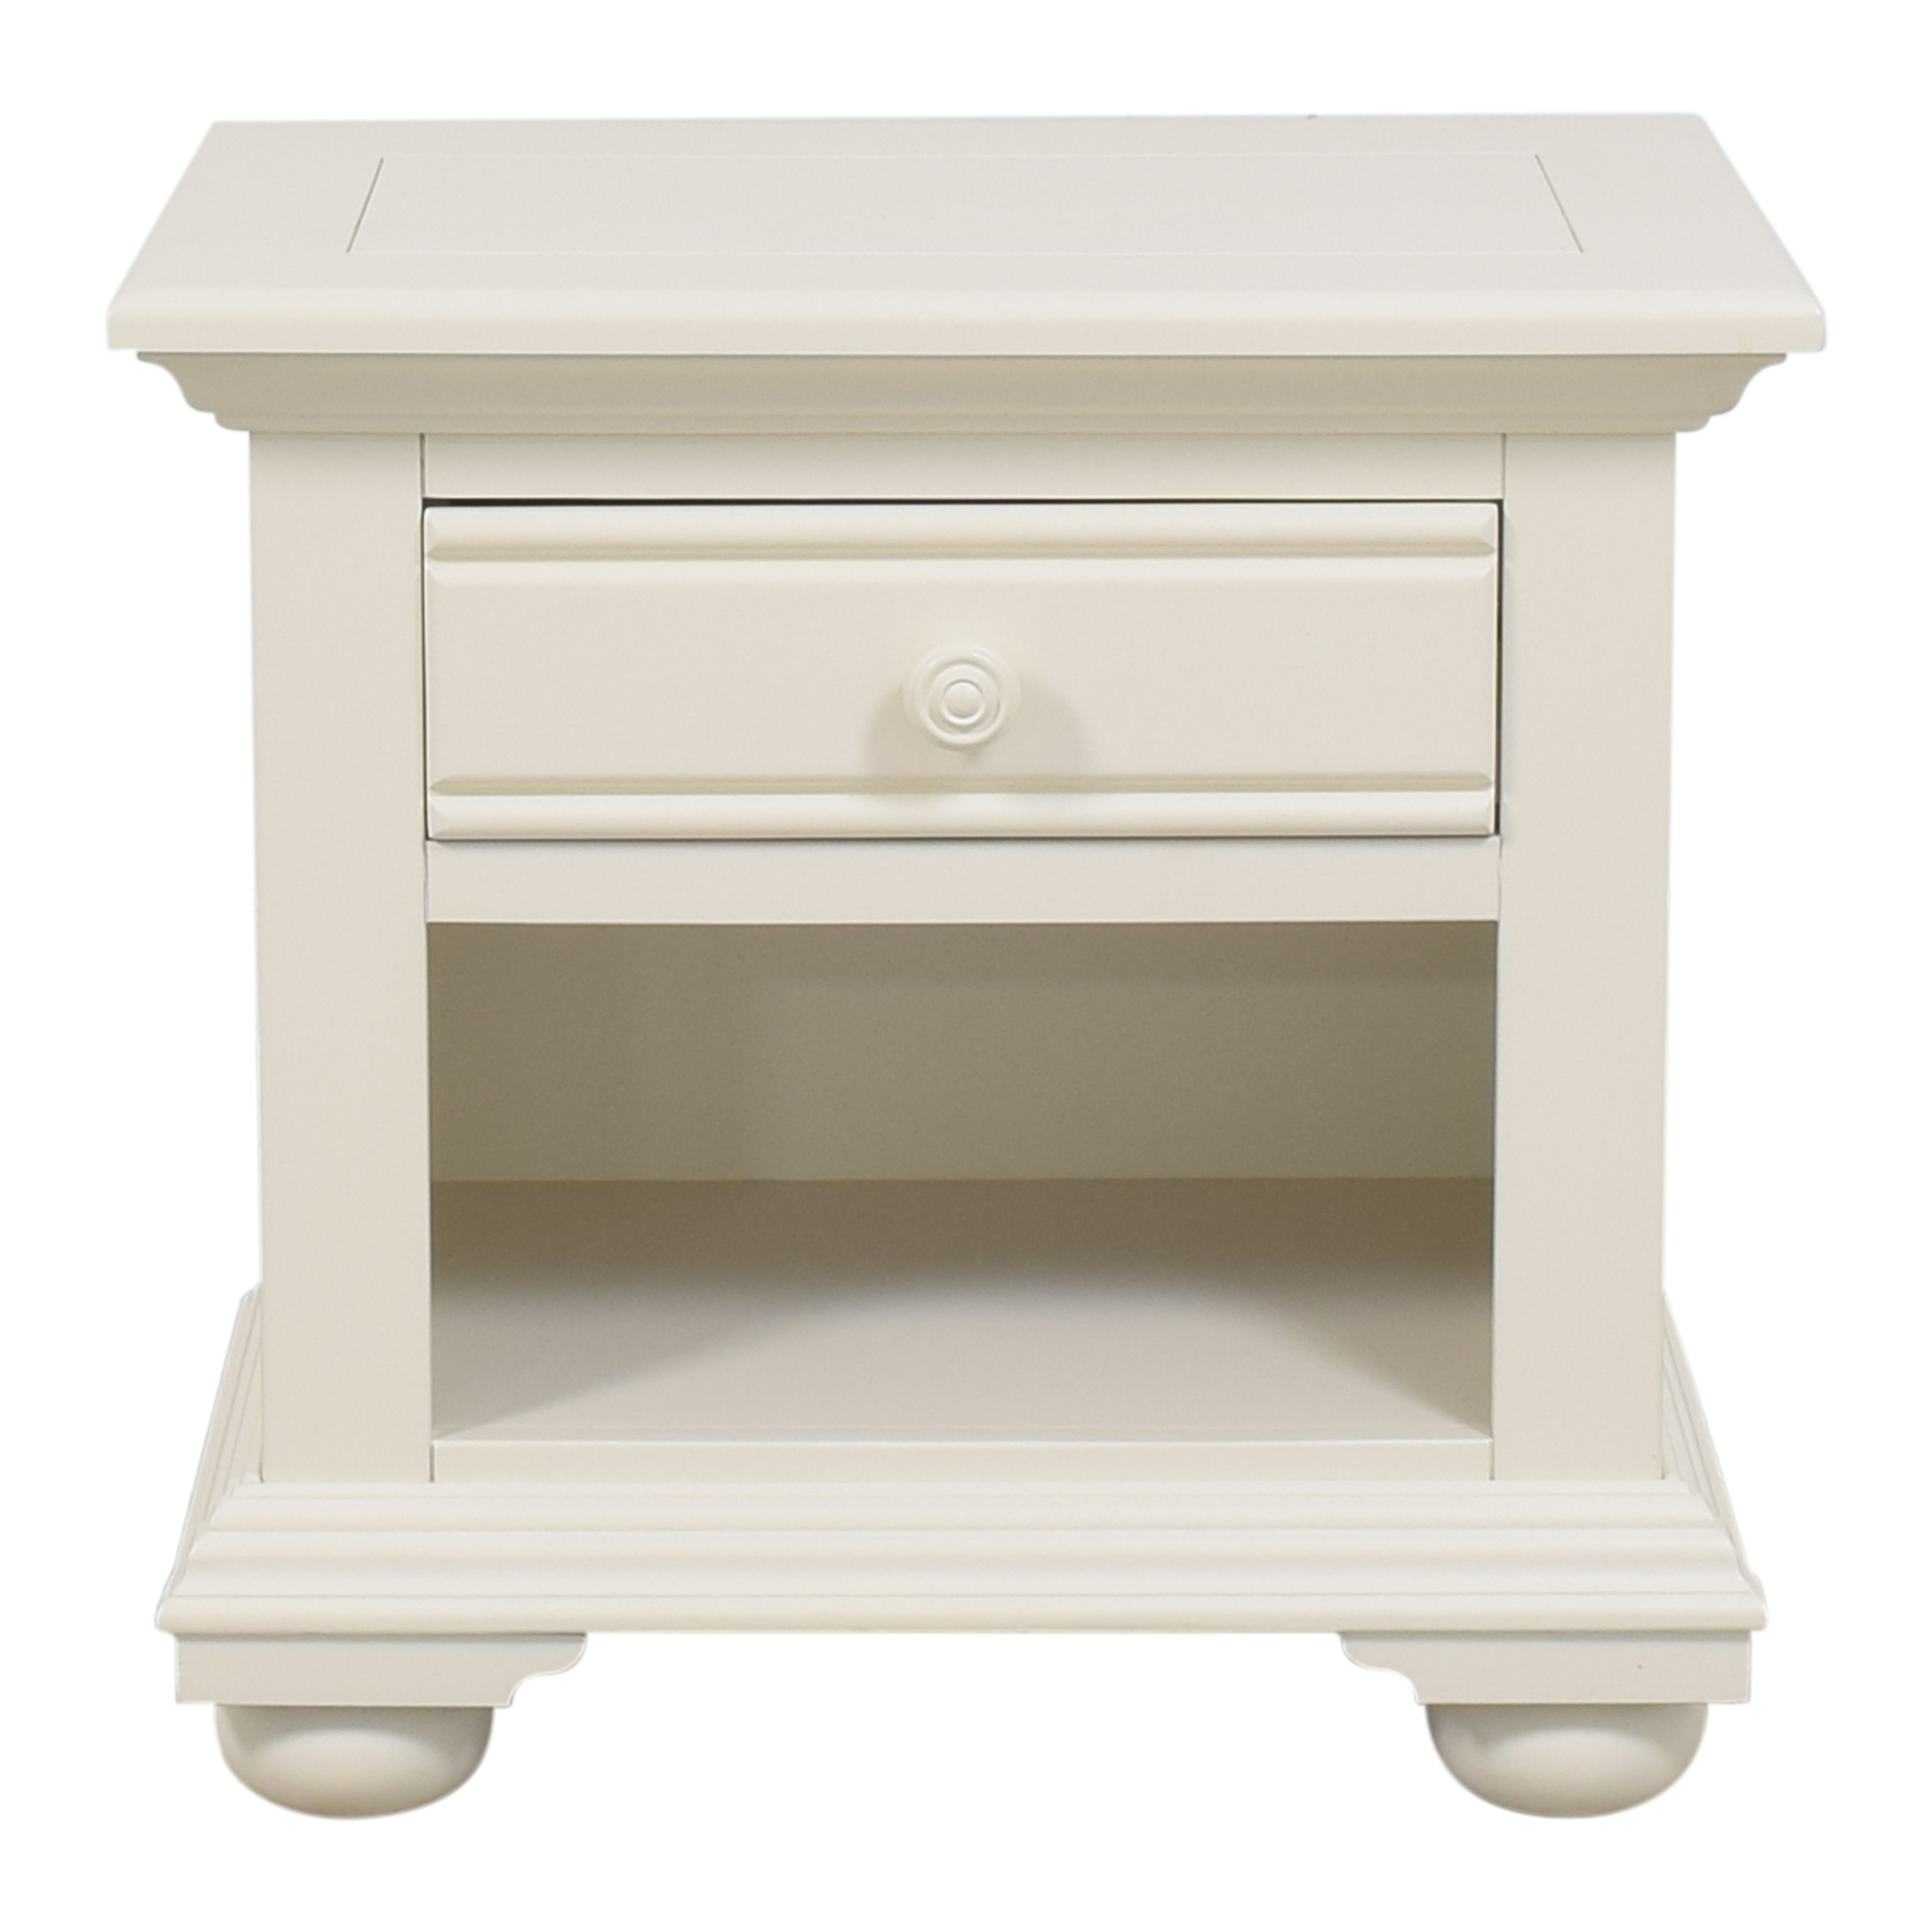 buy American Woodcrafters American Woodcrafters Single Drawer Nightstand online